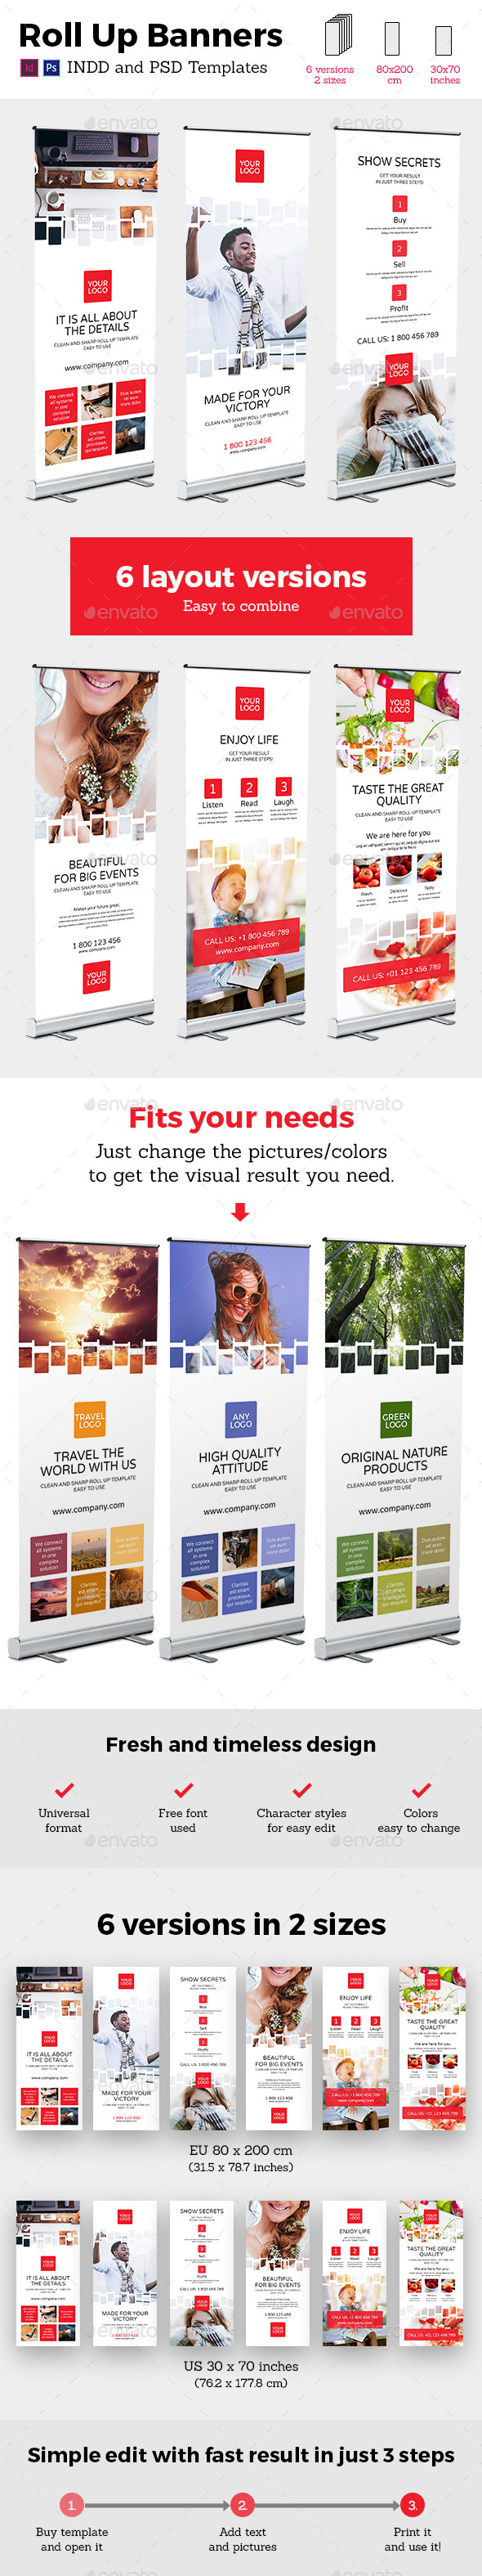 Rollup Stand Banner Display Digital Style 12x InDesign and Photoshop Template - Signage Print Templates